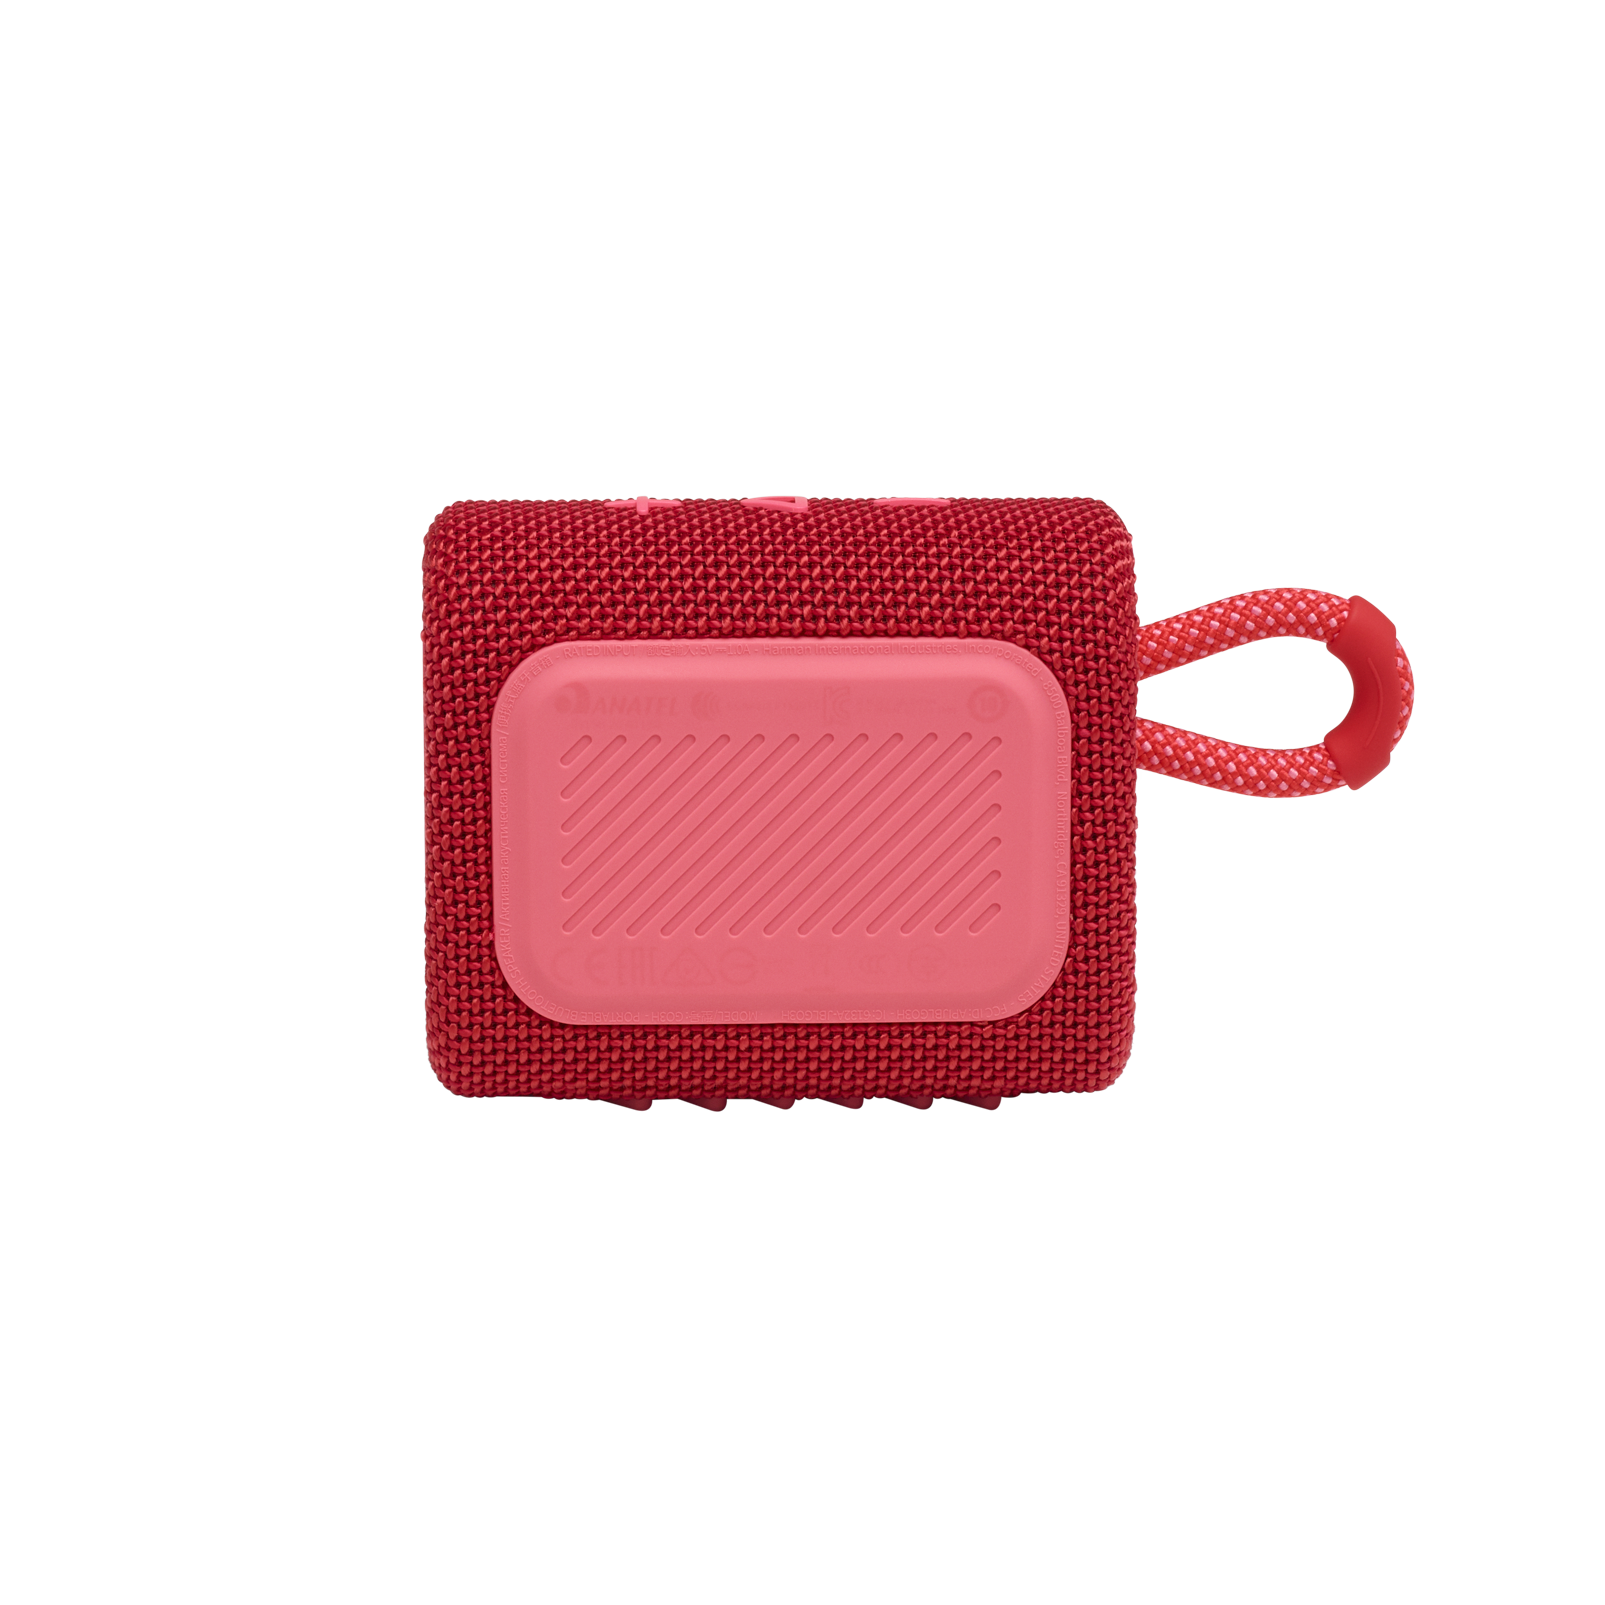 JBL GO 3 - Red - Portable Waterproof Speaker - Back